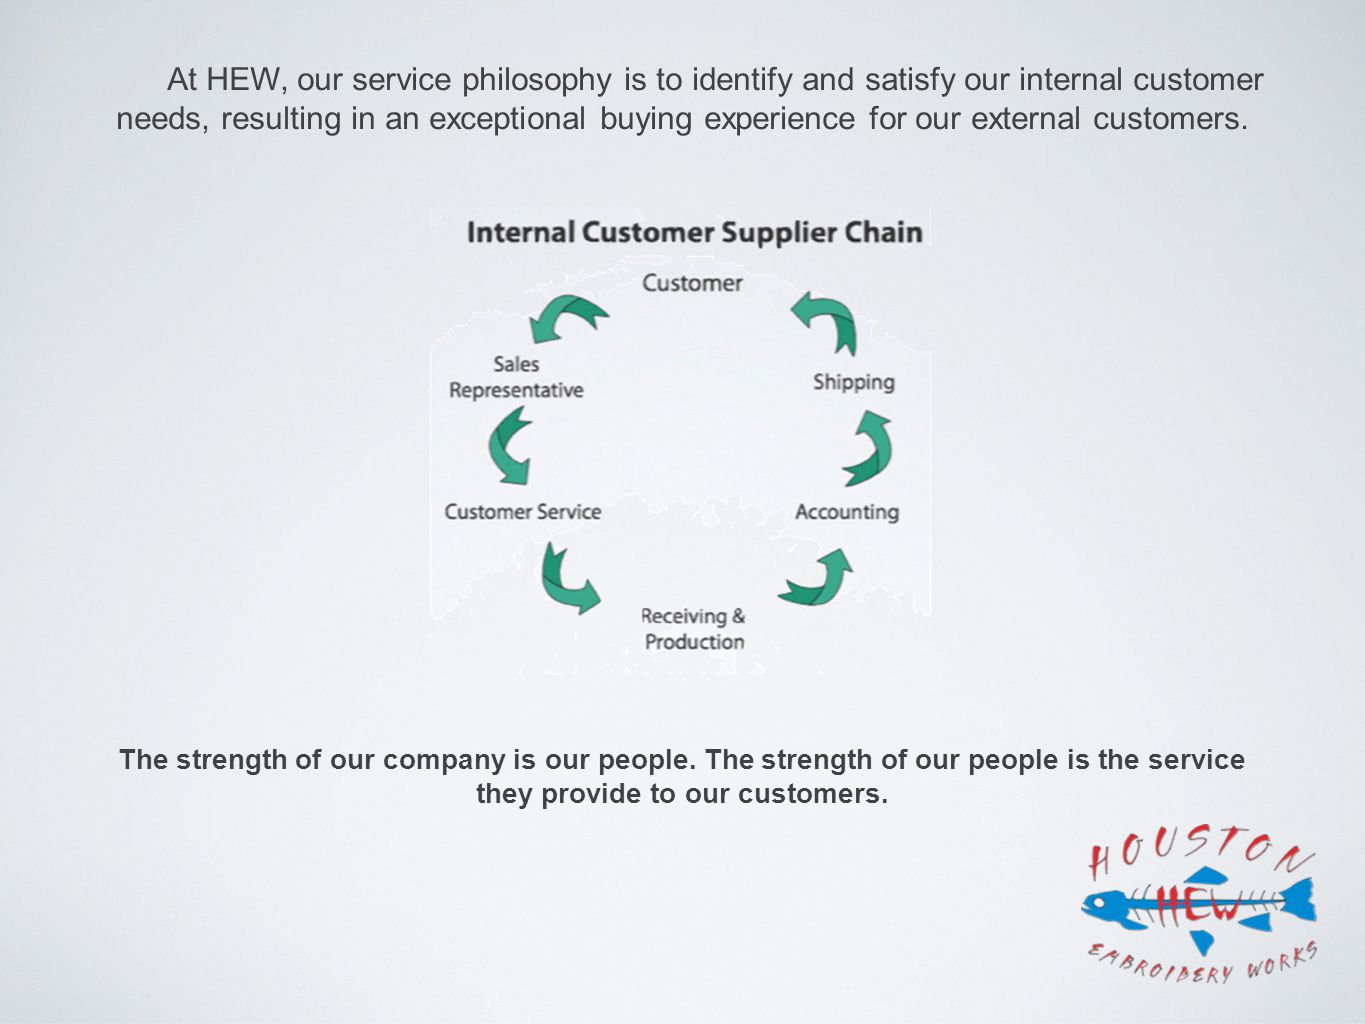 At HEW, our service philosophy is to identify and satisfy our internal customer needs, resulting in an exceptional buying experience for our external customers.